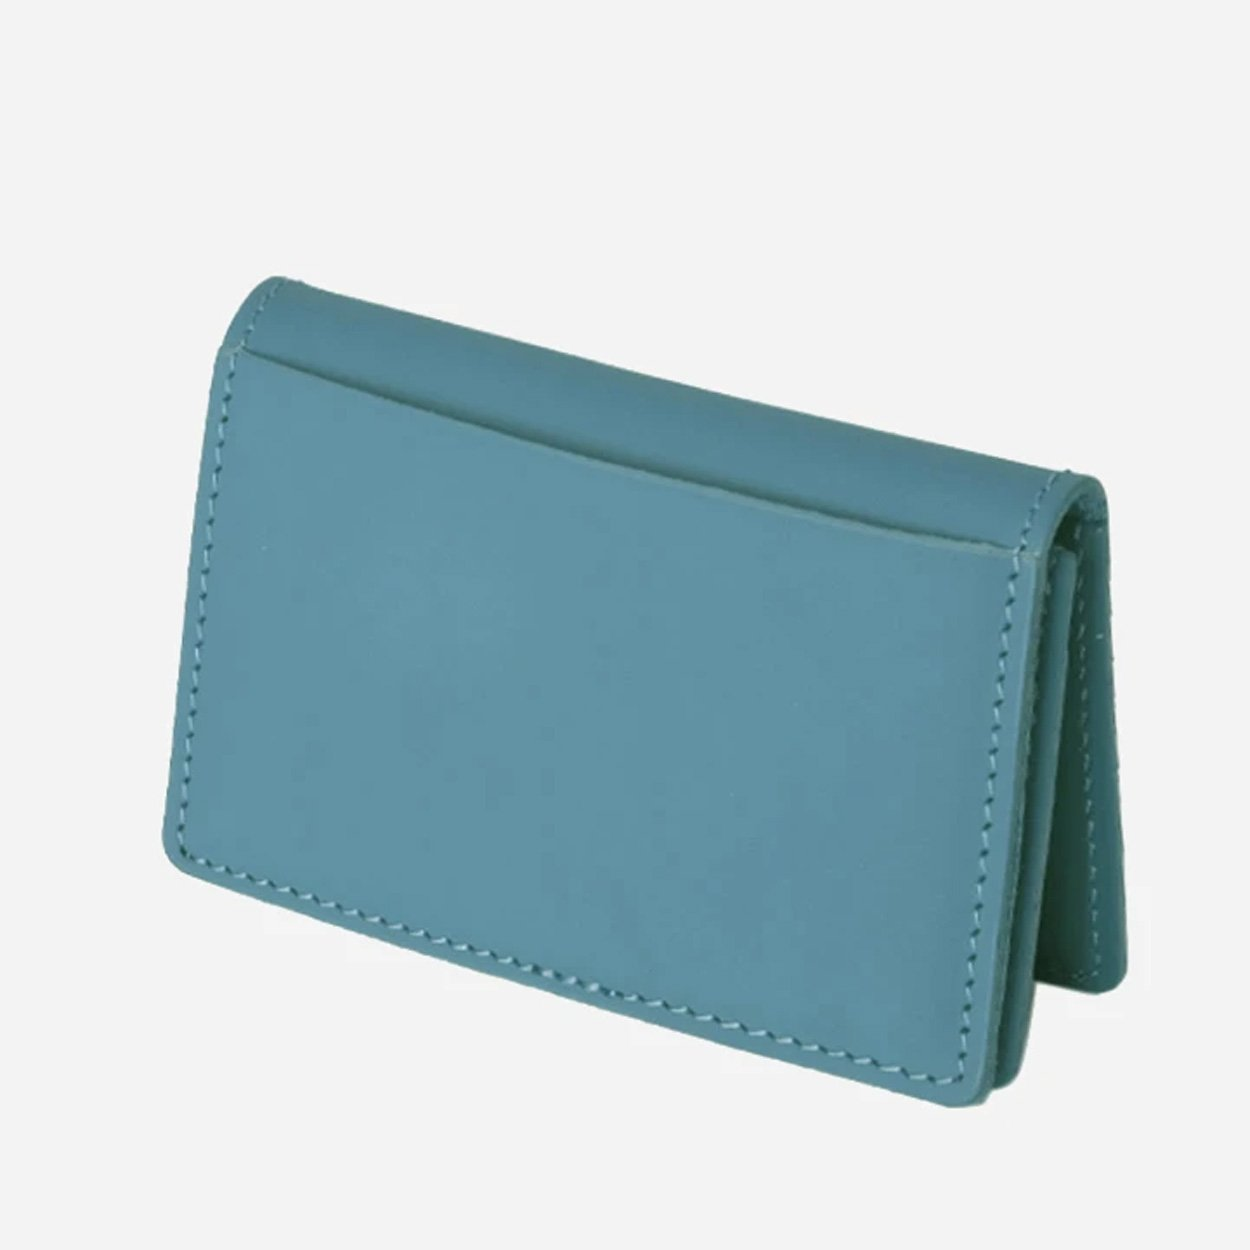 The Oyster Foldover Leather Wallet - Pacific